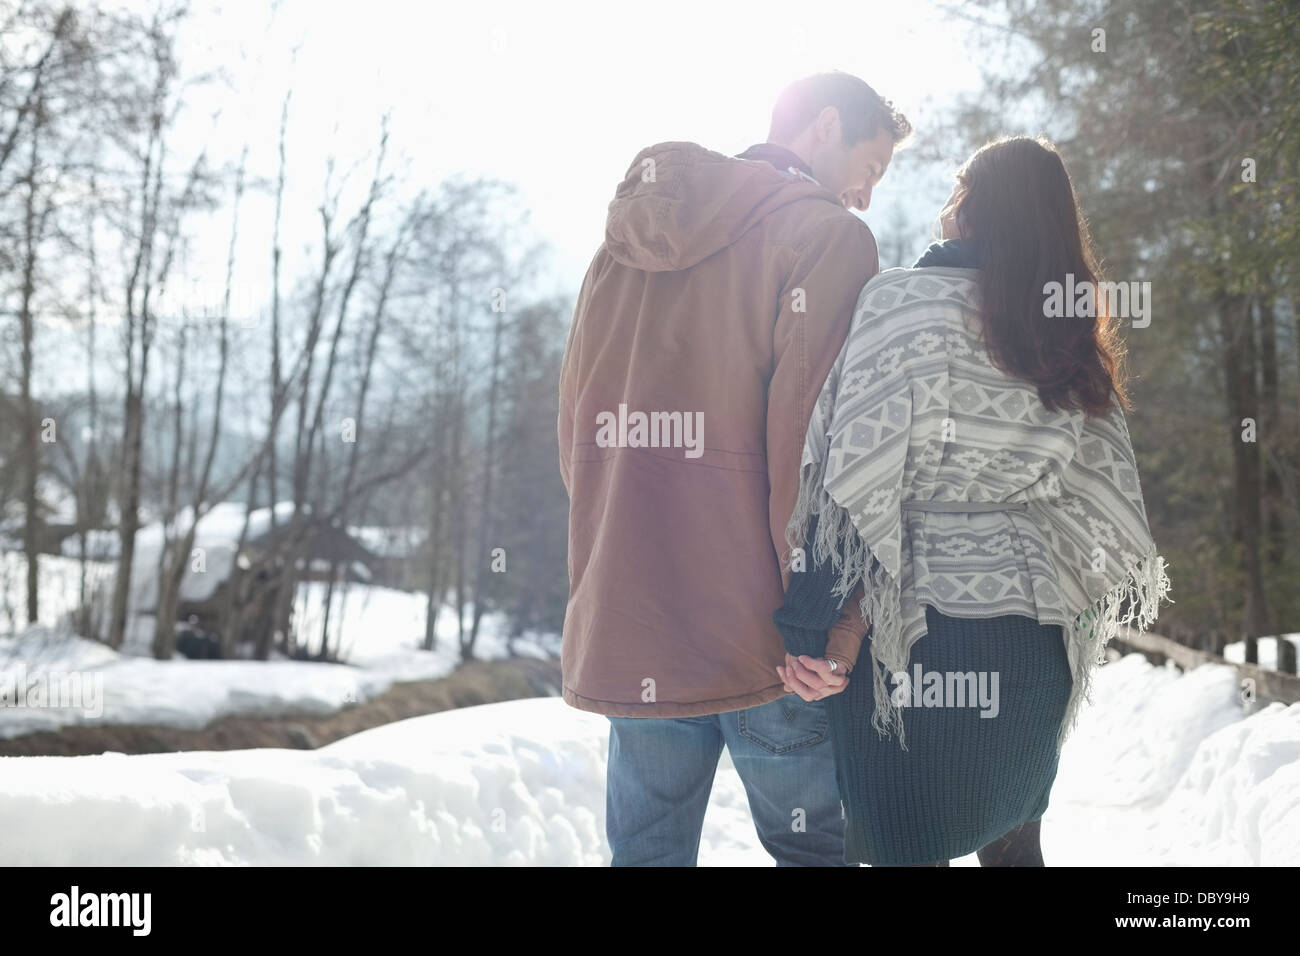 Couple holding hands and walking in snowy lane - Stock Image